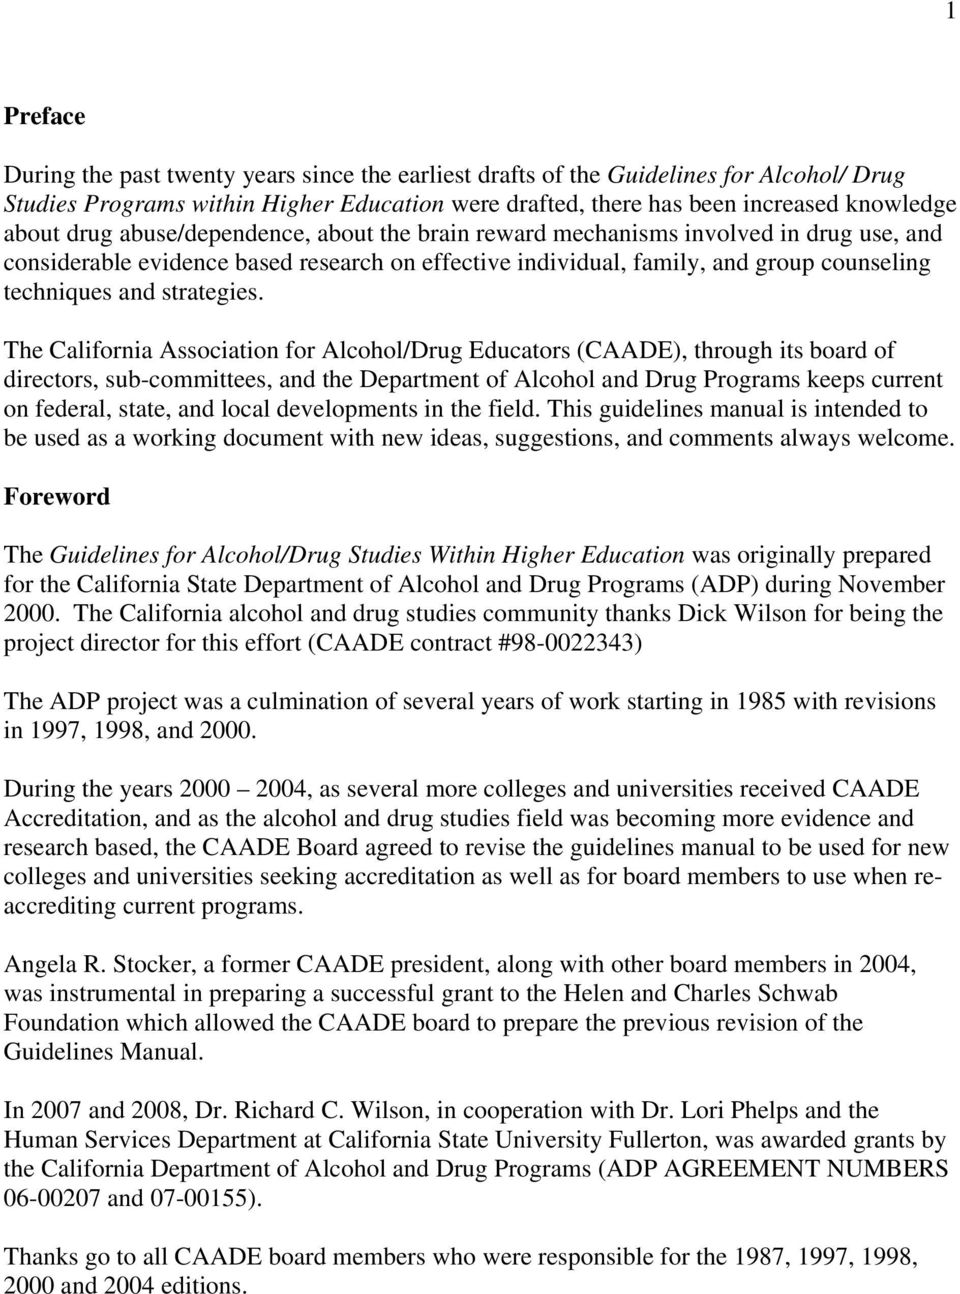 The California Association for Alcohol/Drug Educators (CAADE), through its board of directors, sub-committees, and the Department of Alcohol and Drug Programs keeps current on federal, state, and